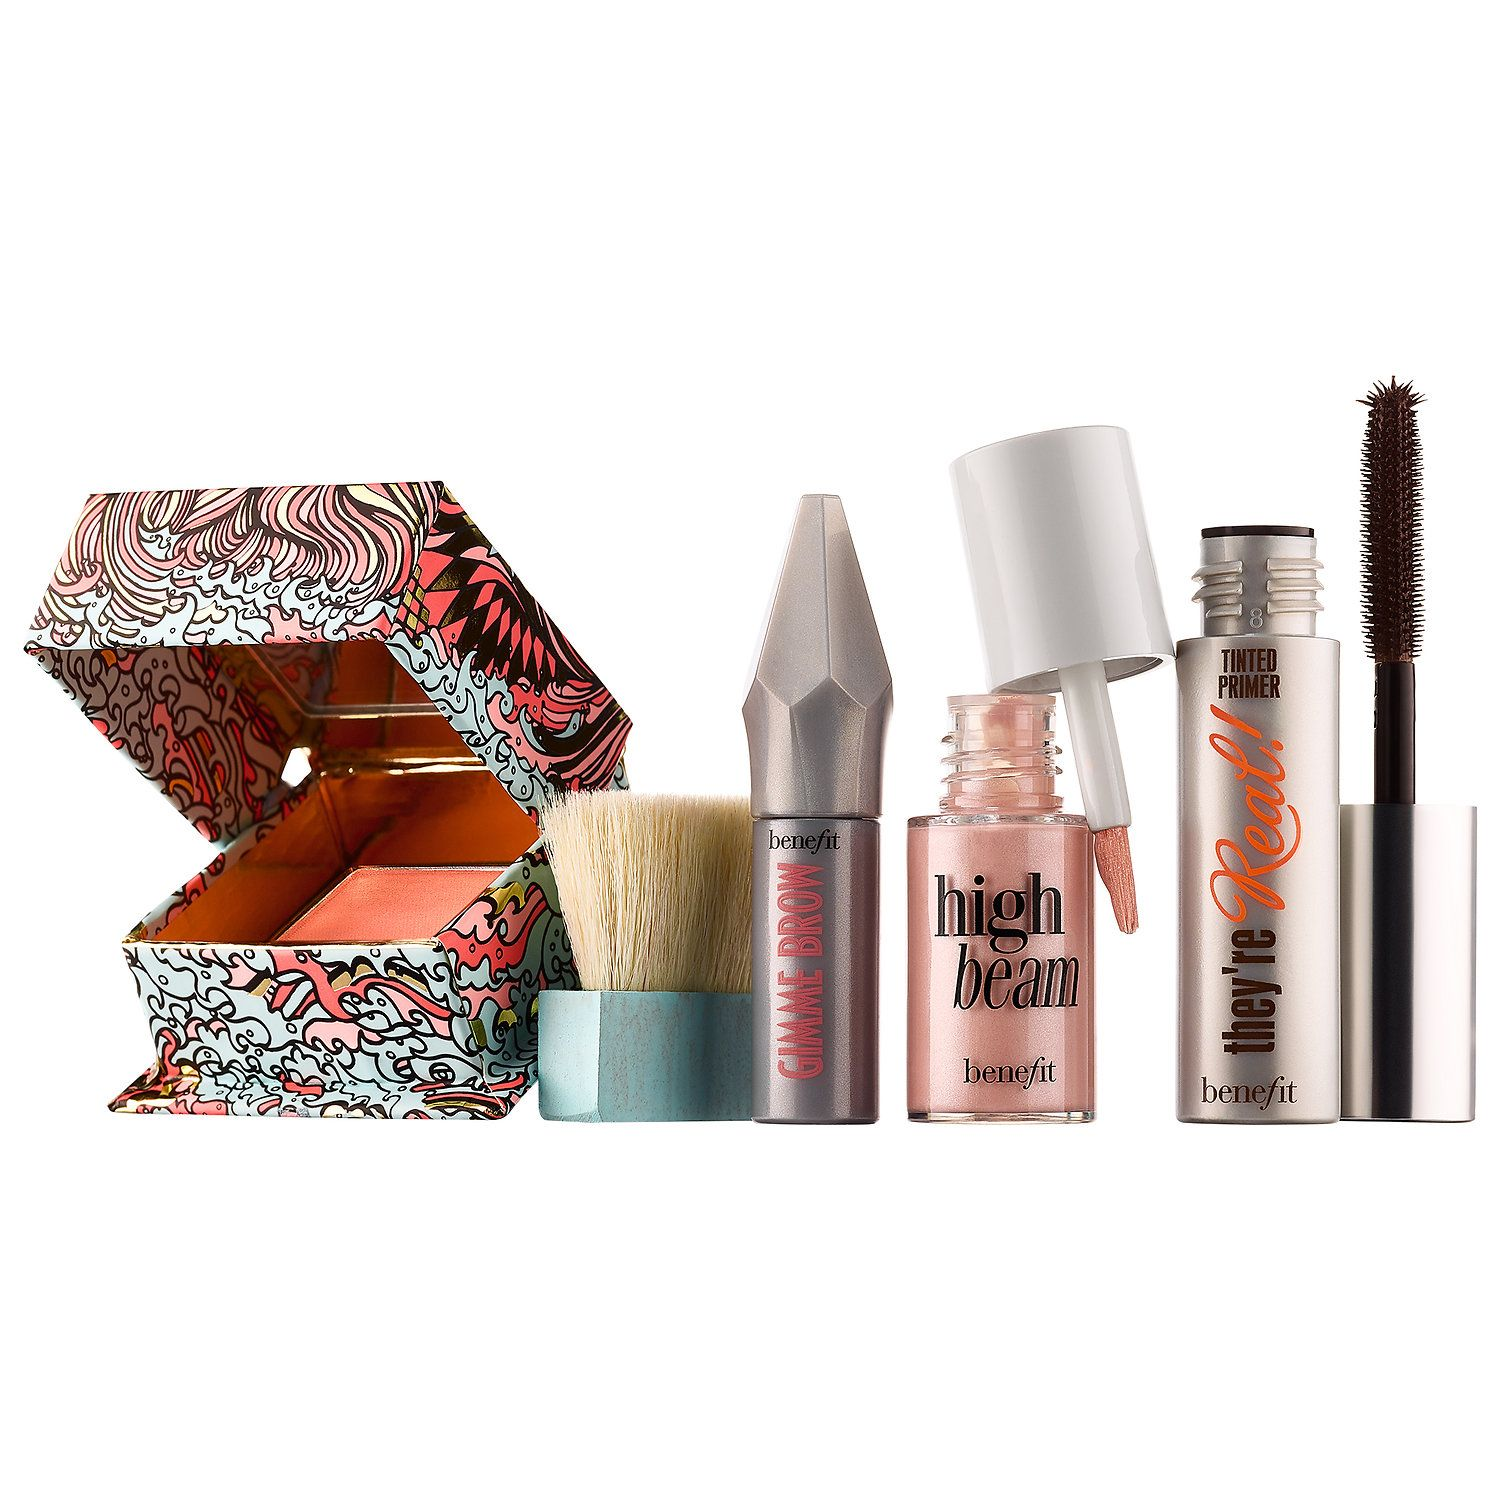 Sunday My Prince Will Come Easy Weekender Makeup Kit